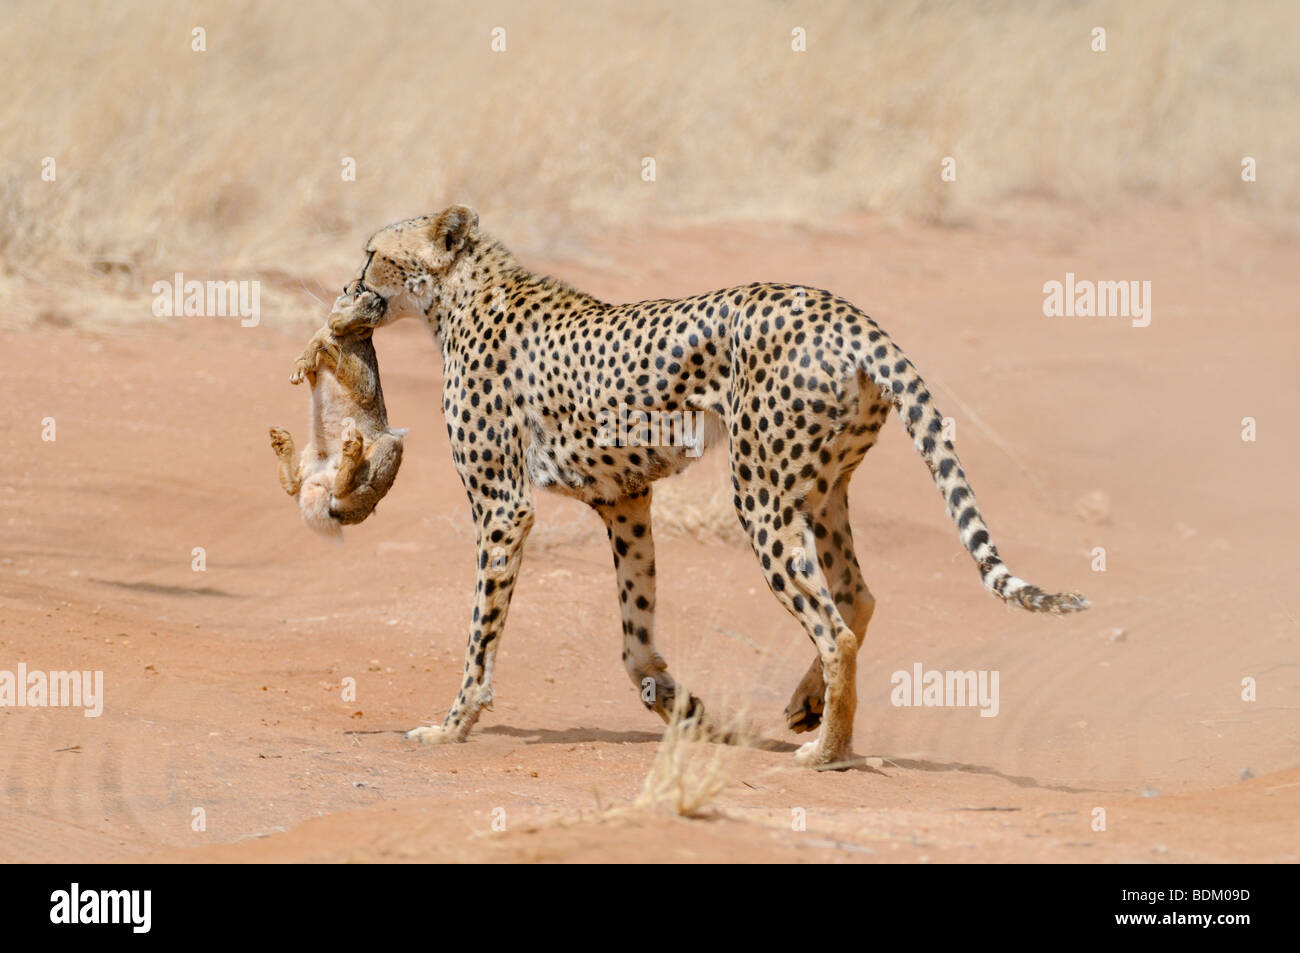 Africa, Kenya, Samburu National Reserve, Cheetah (Acinonyx jubatus) carries a hunted rabbit in its mouth back to - Stock Image